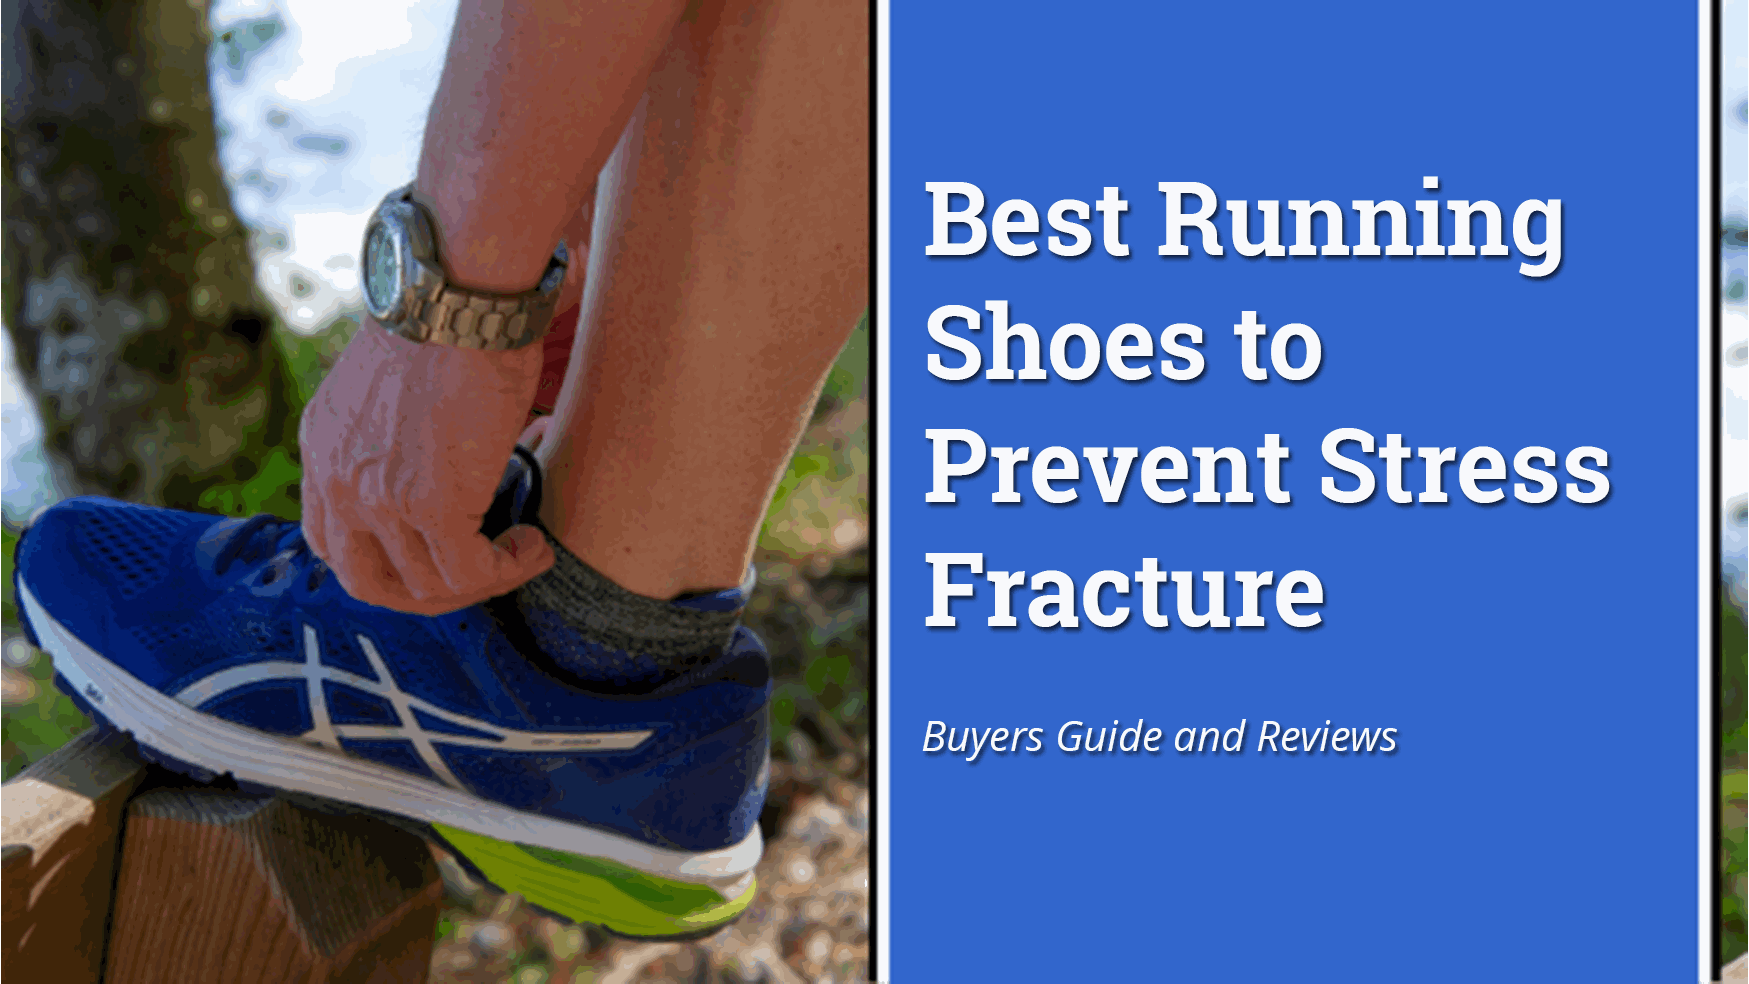 Best Running Shoes to Prevent Stress